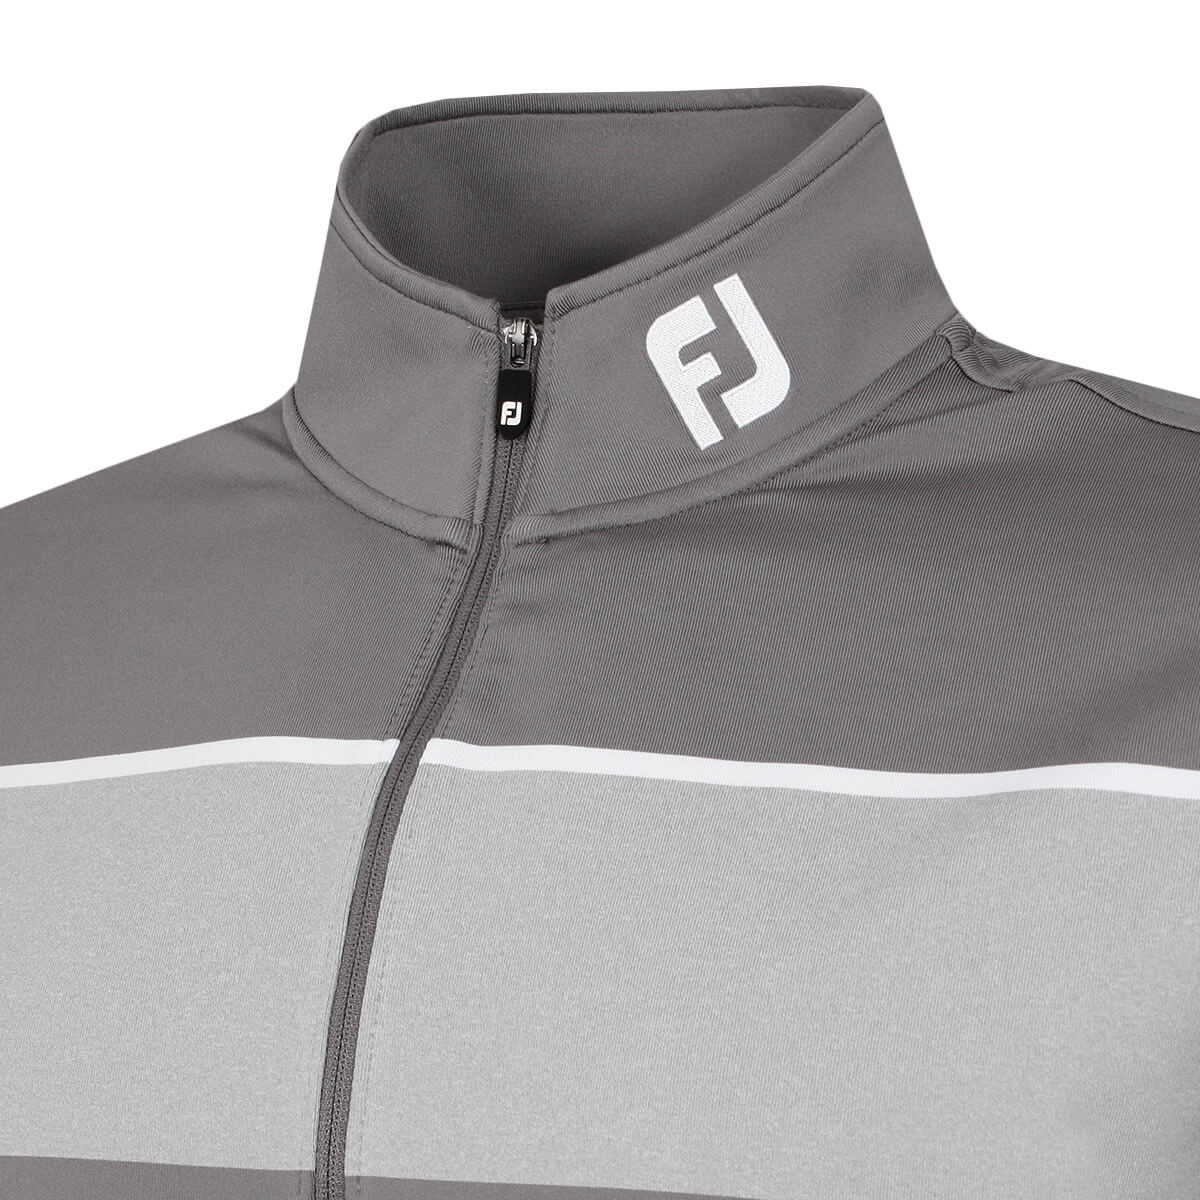 Footjoy-Mens-Jersey-Chest-Stripe-1-2-Zip-Wicking-Golf-Sweater-51-OFF-RRP thumbnail 4